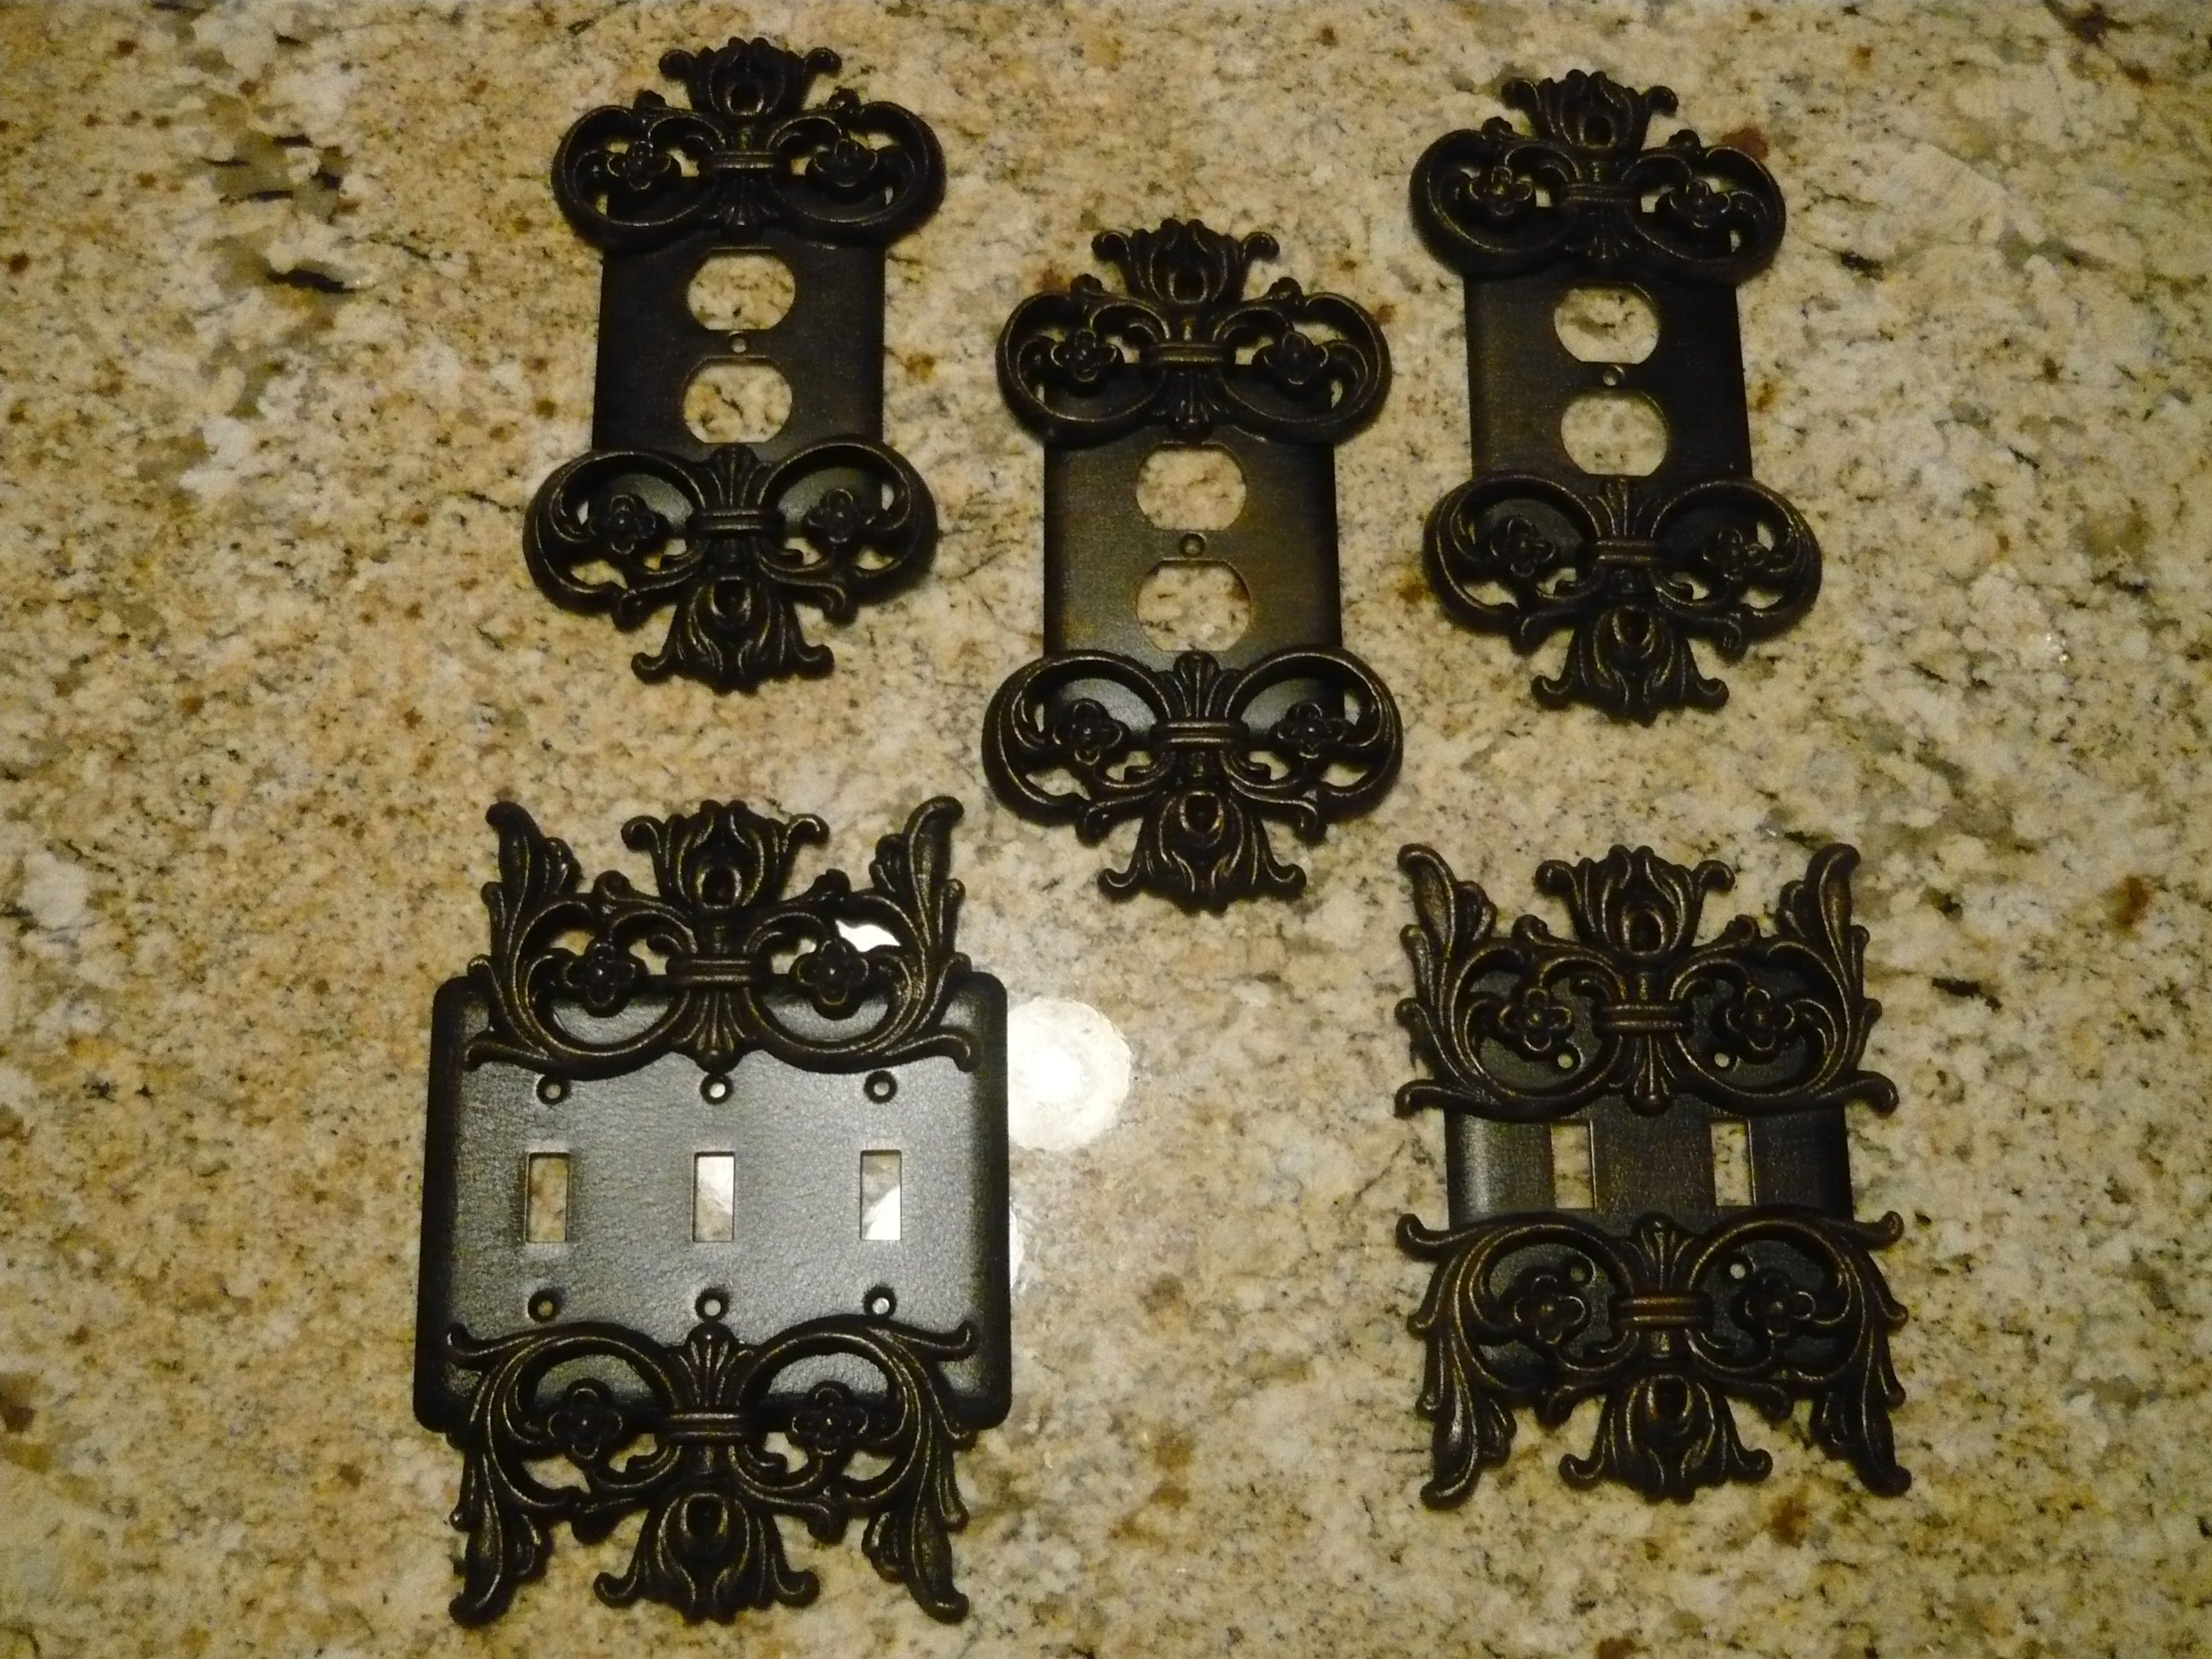 Gold Outlet Covers Metal Outlet Covers Triple Light Switch Cover And Double Light